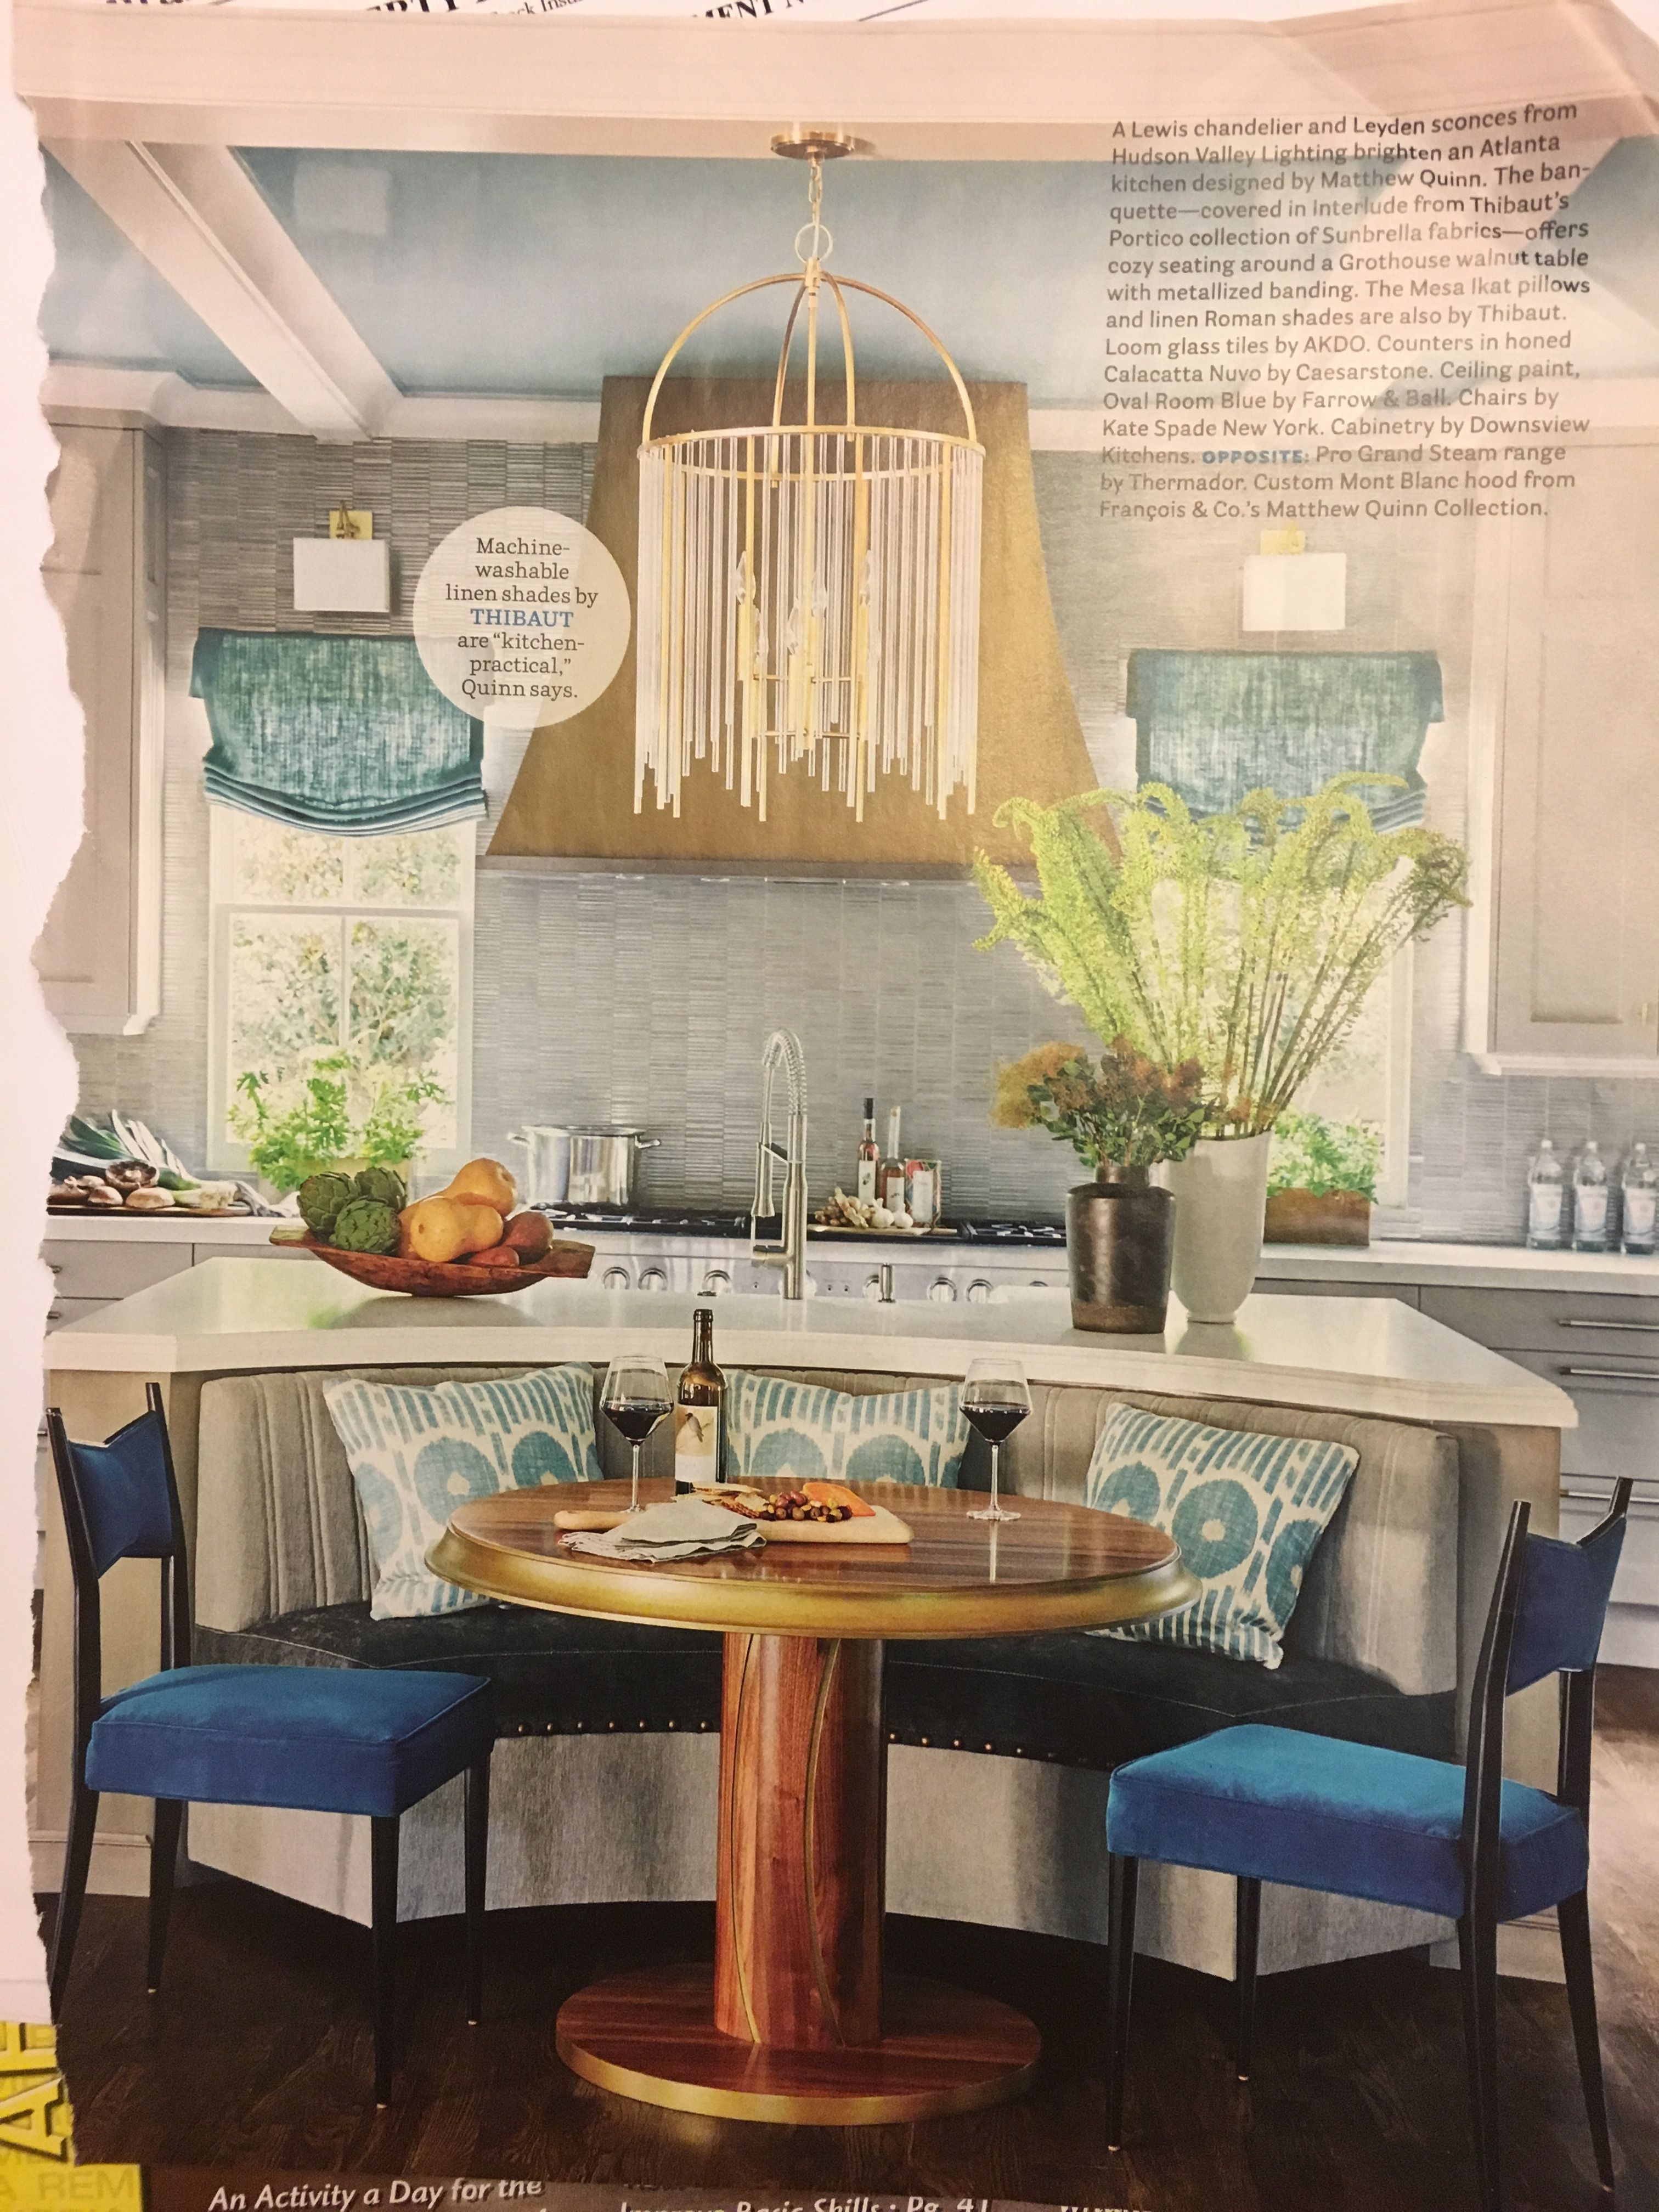 Banquette and little table backed up to island Kitchen